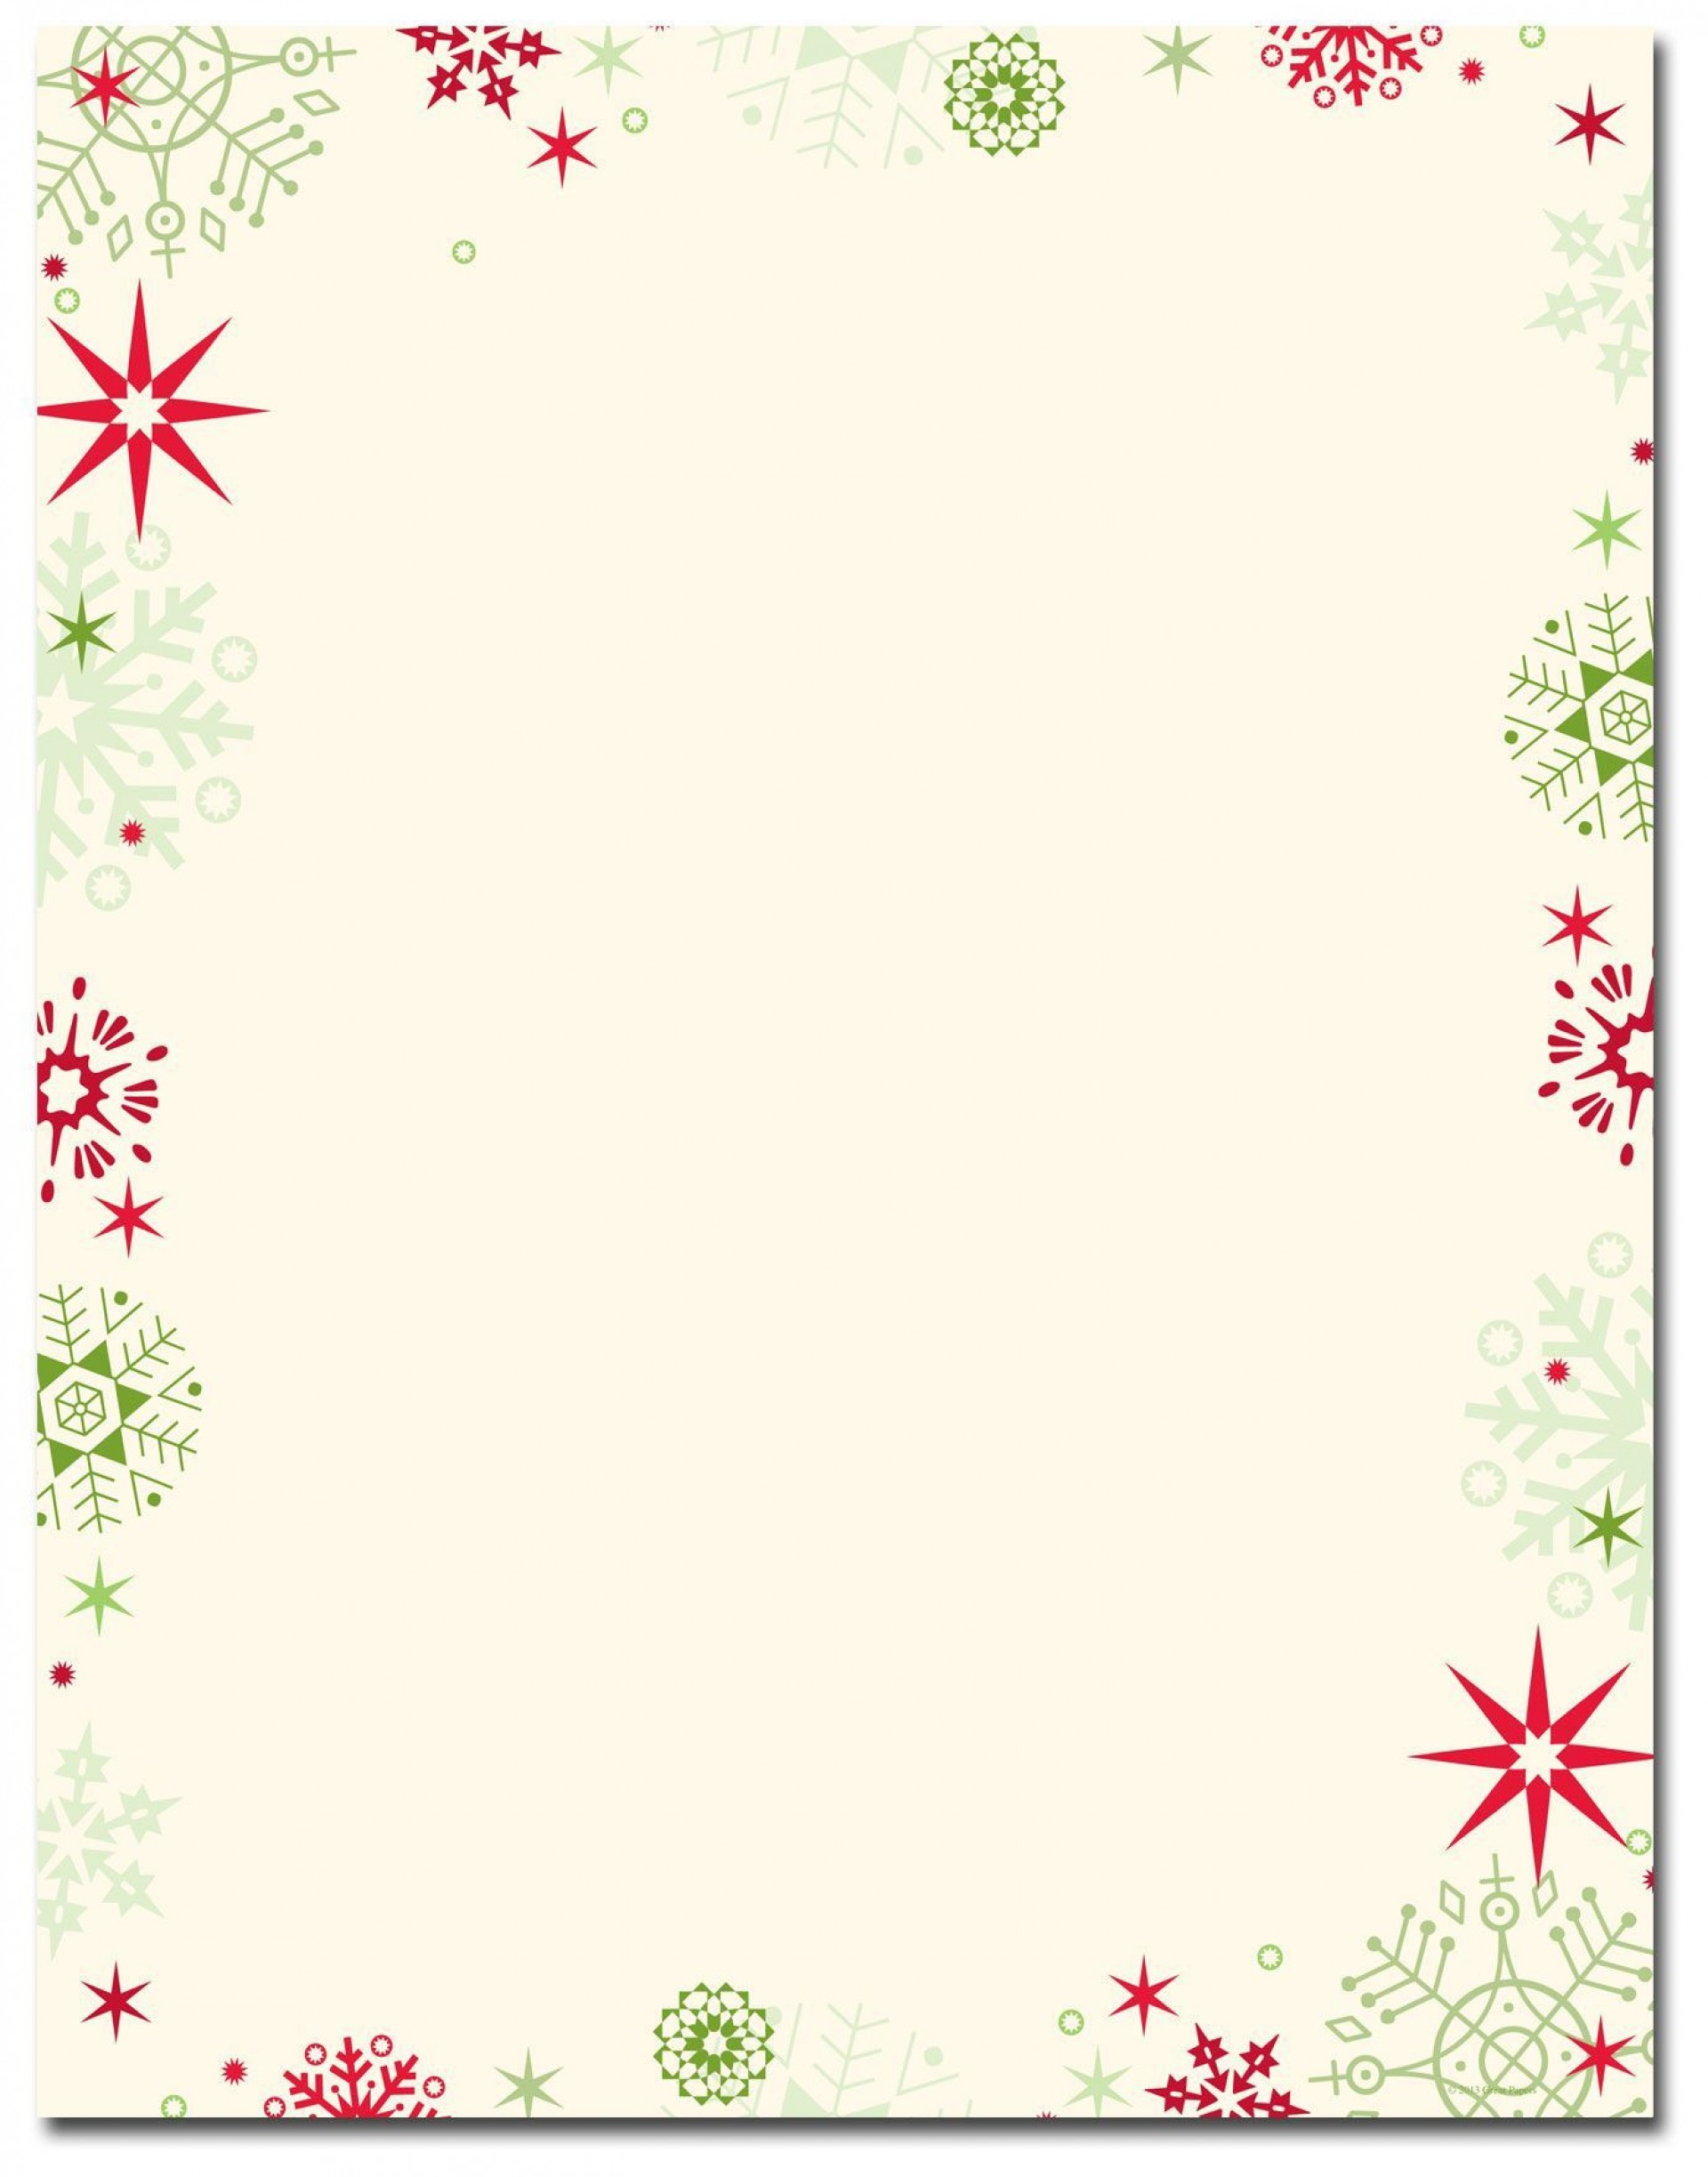 006 Excellent Free Holiday Stationery Template For Word Example 1920